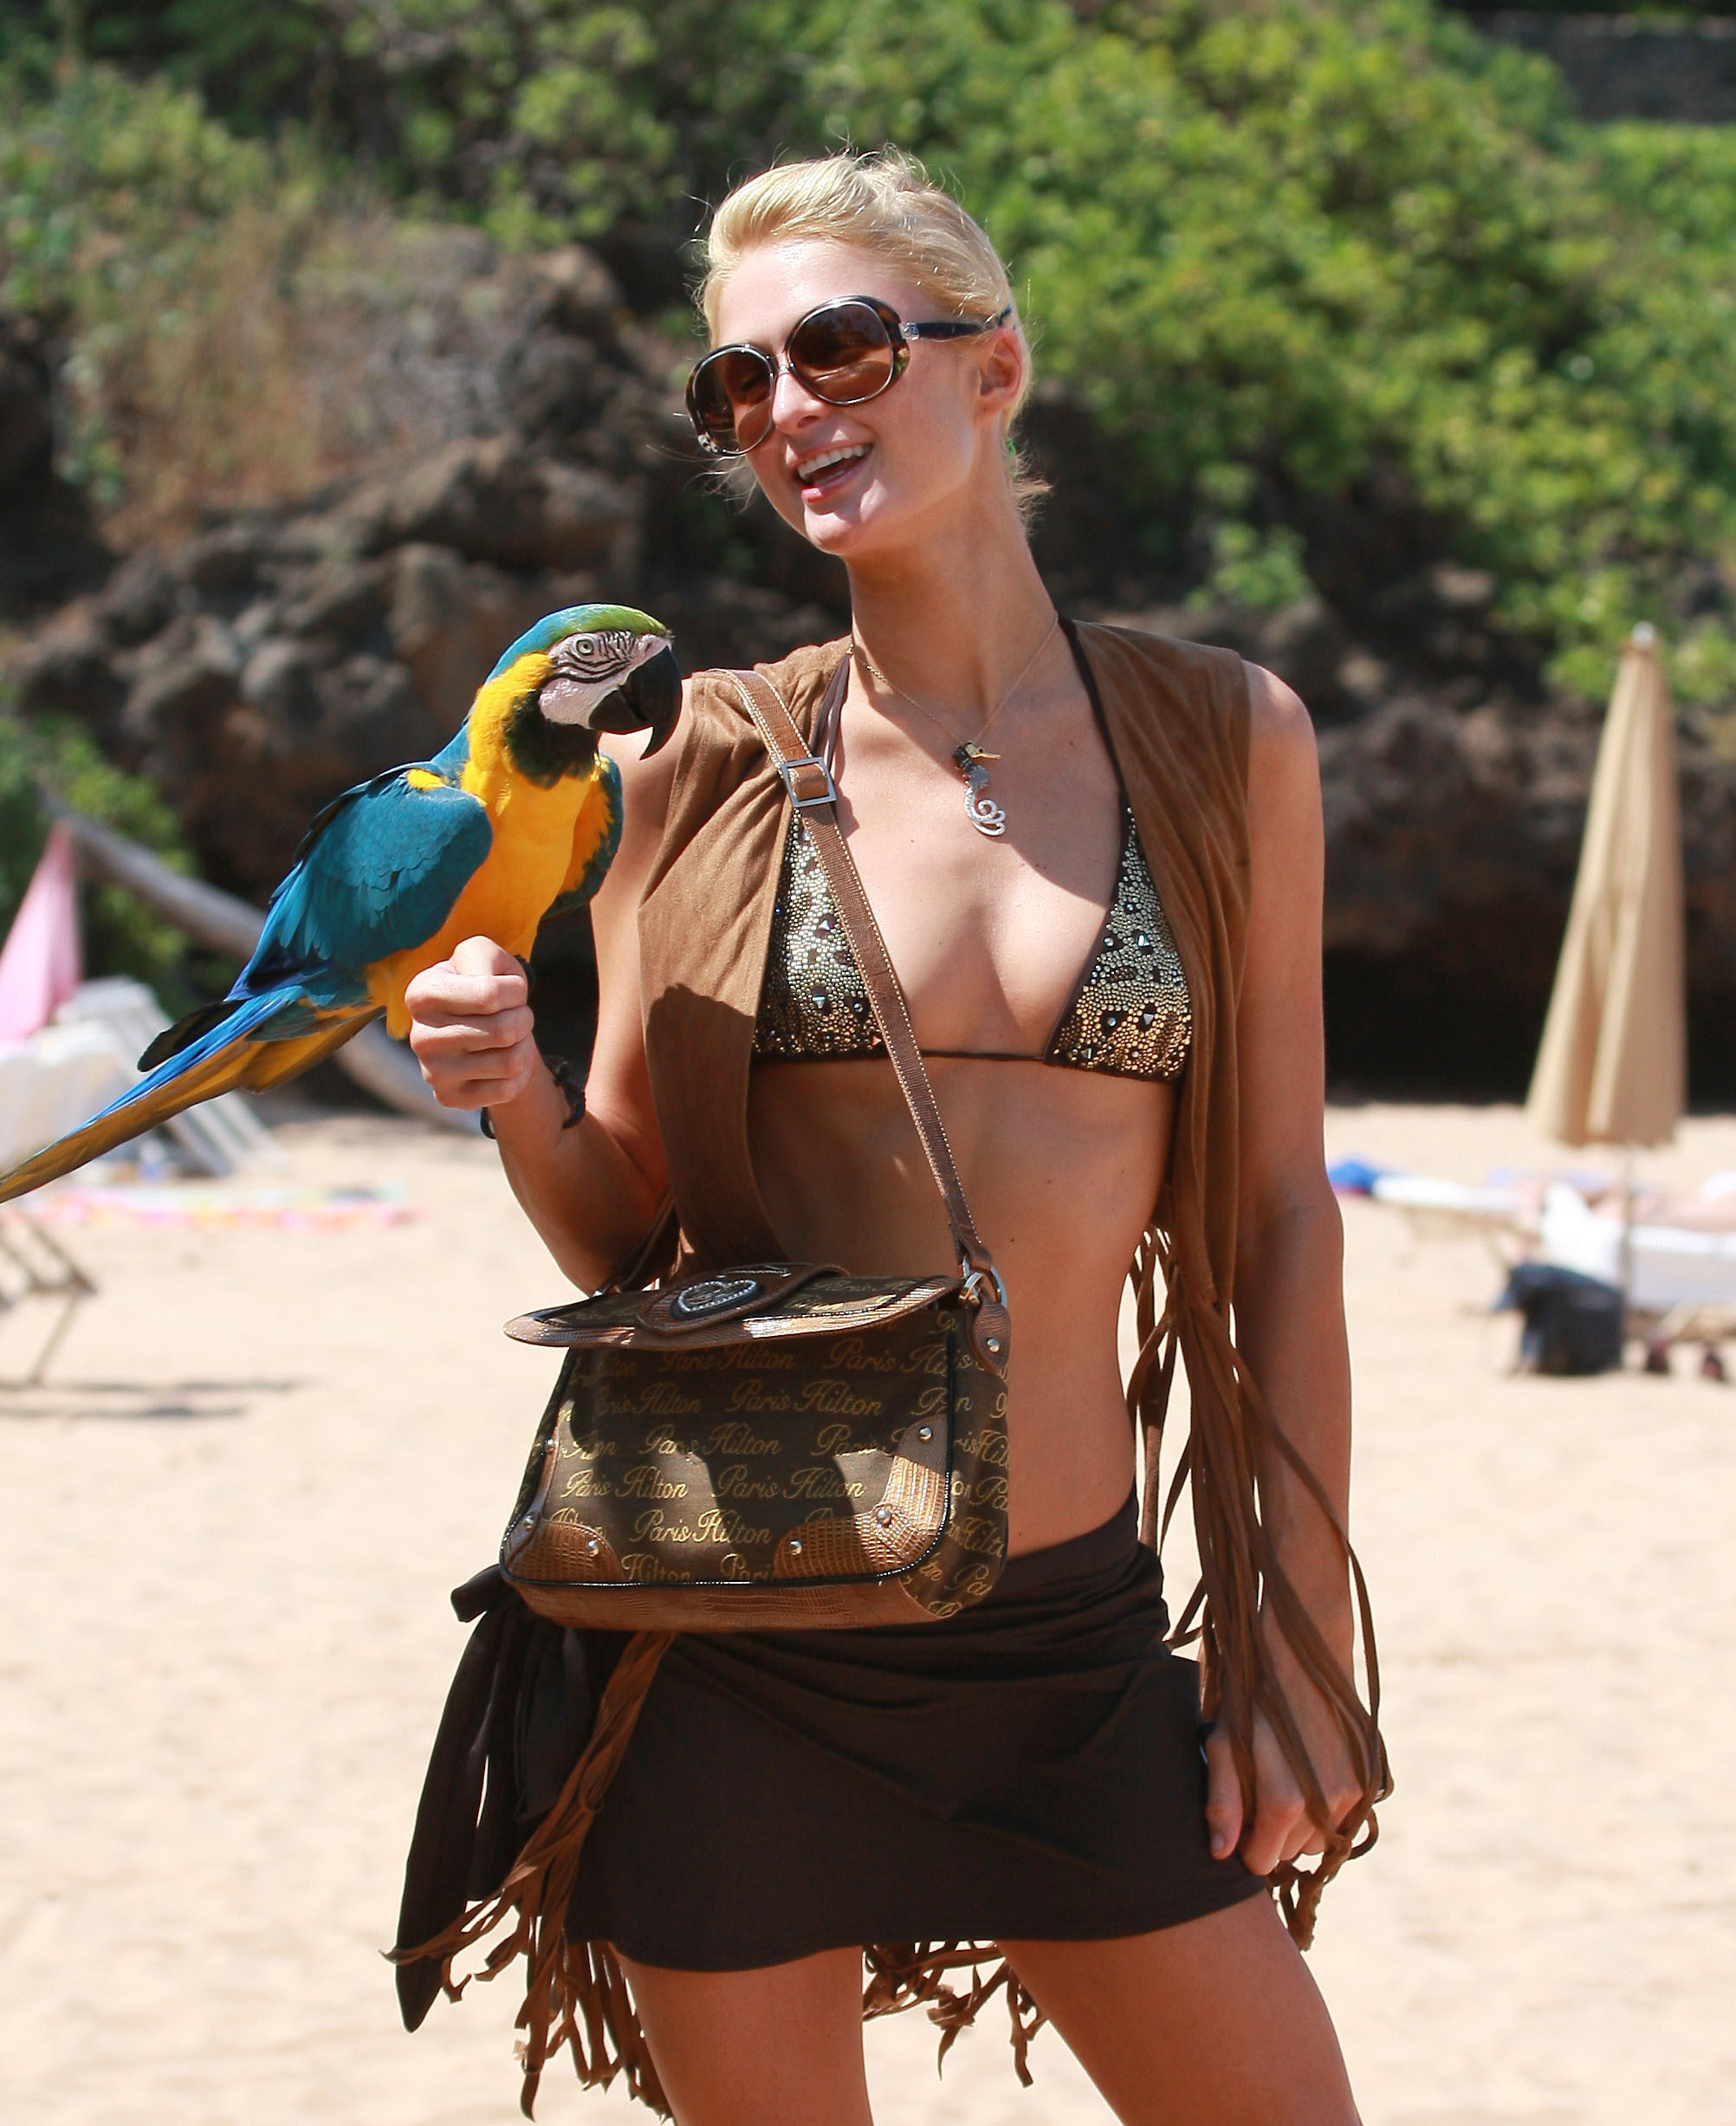 Paris on the Beach With a Parrot